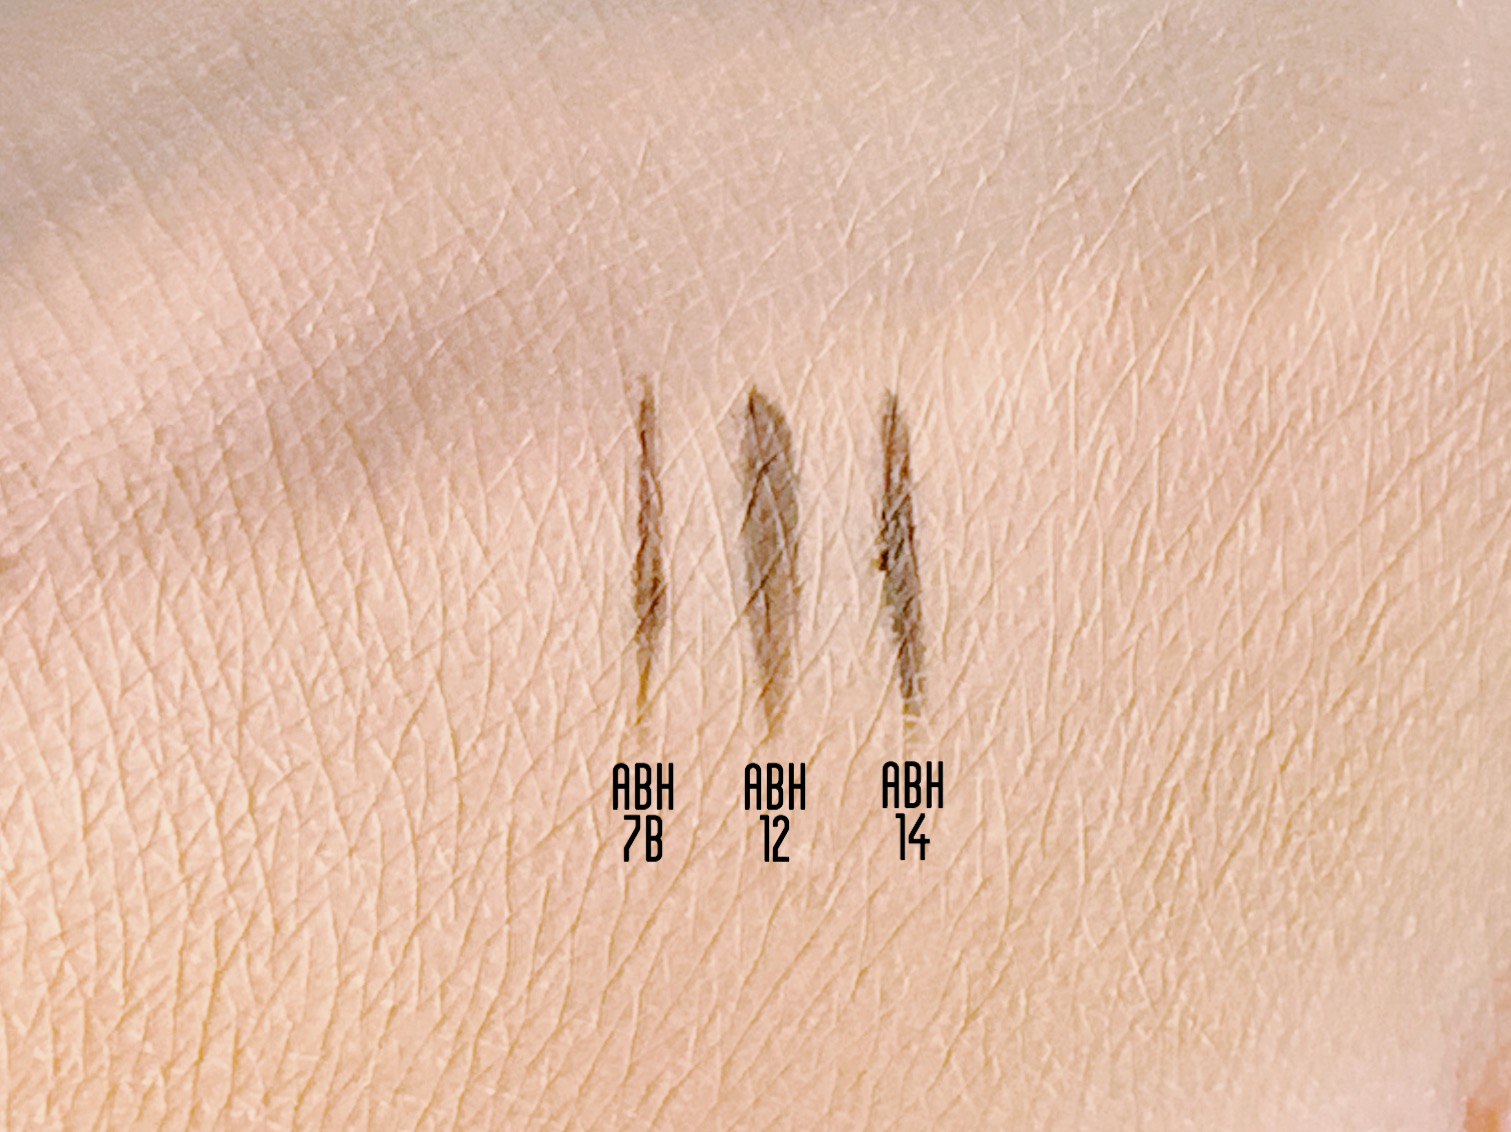 ABH brow brush 12 vs 14 vs 7B